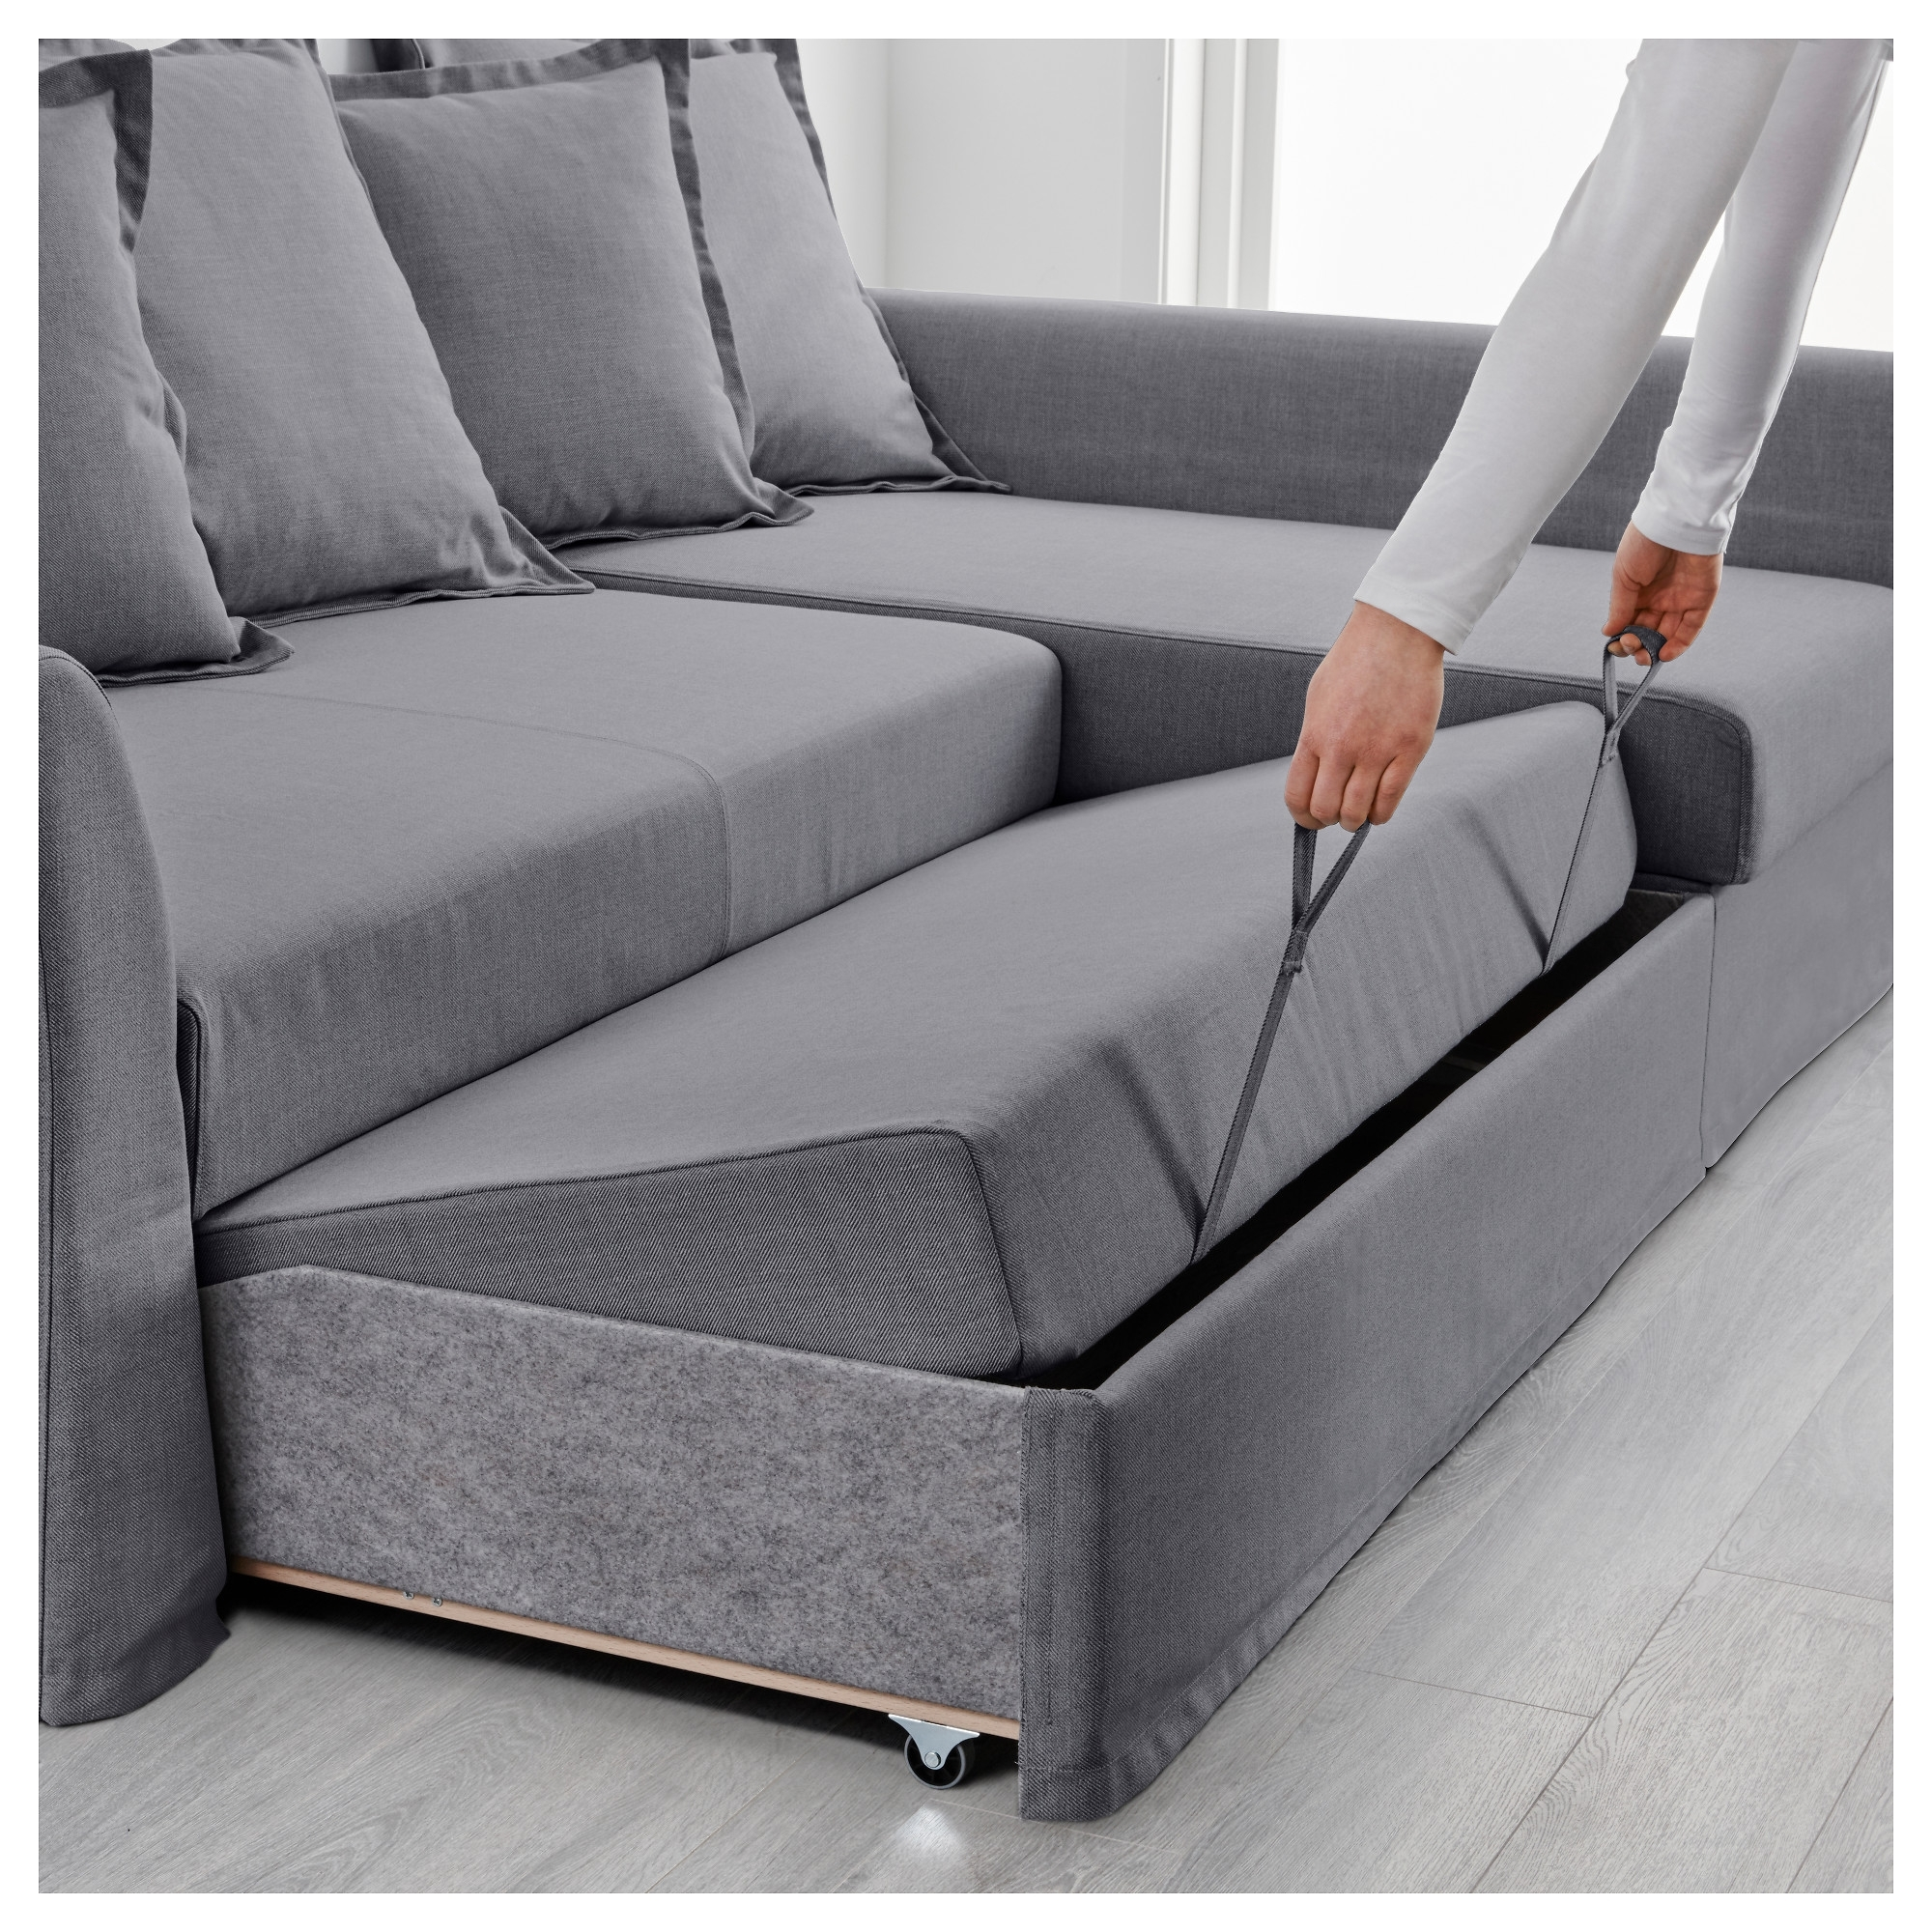 Fashionable Ikea Corner Sofas With Storage With Sofa : Elegant Ikea Corner Sofa Bed Friheten With Storage Skiftebo (View 2 of 20)